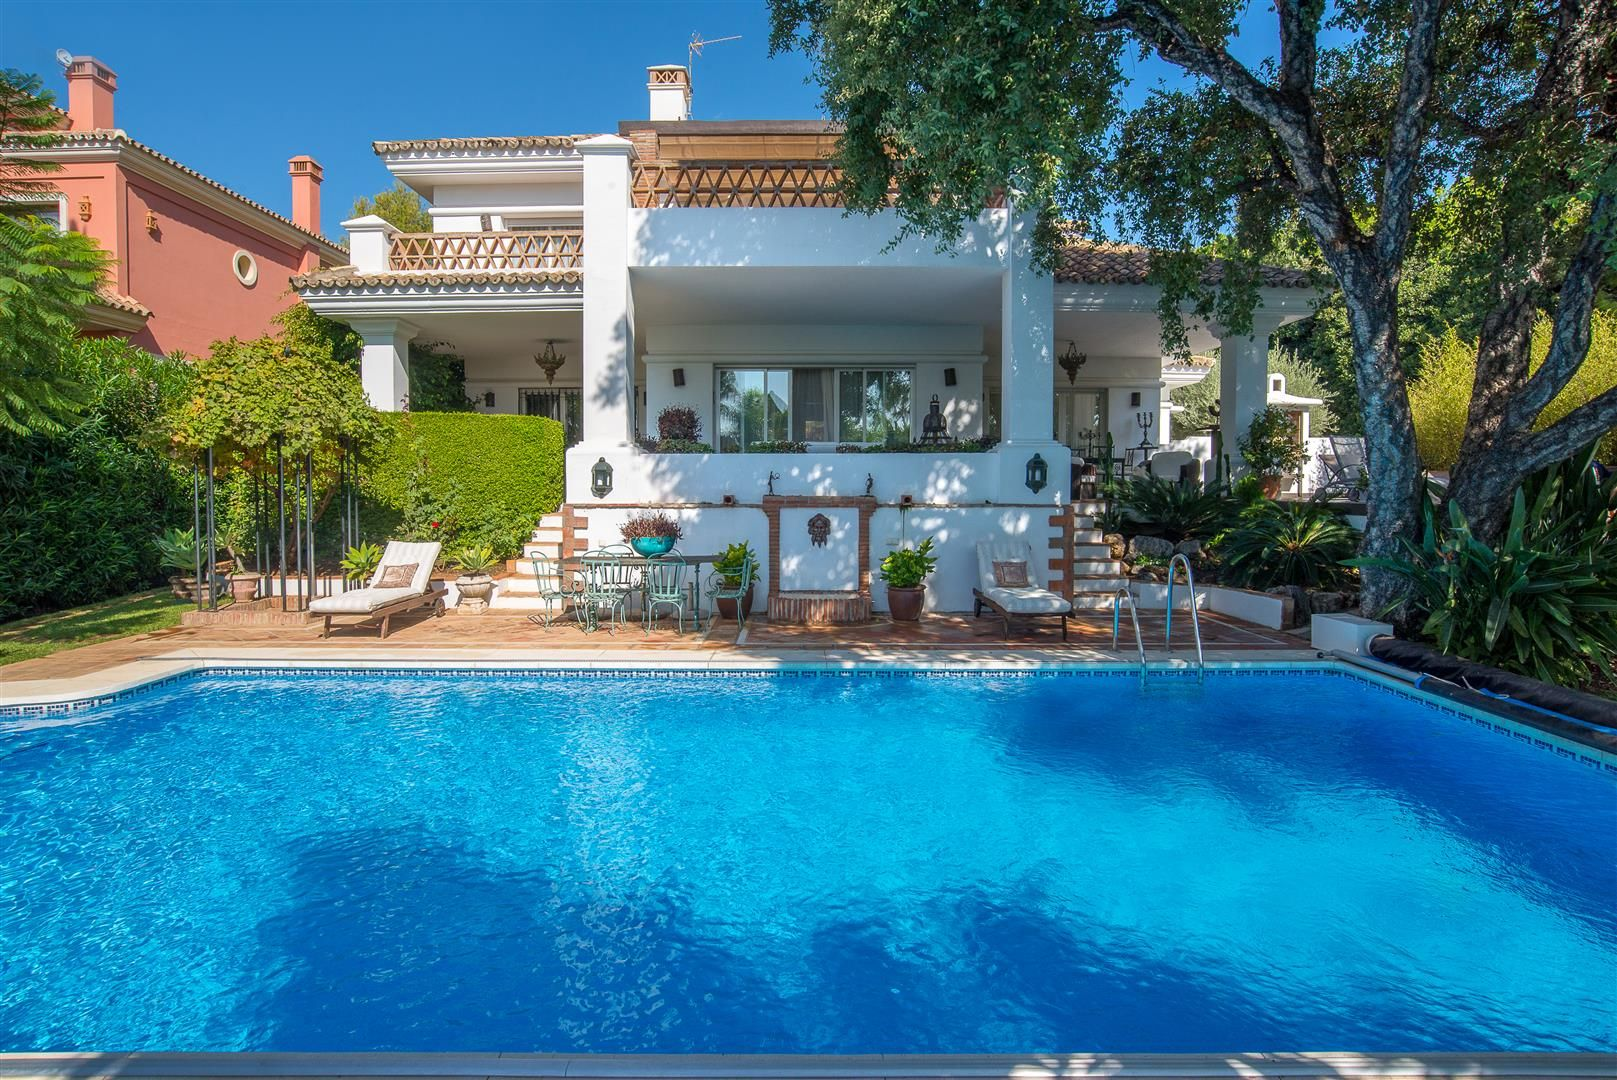 Stylish villa in Altos Reales in Sierra Blanca on the Golden Mile of Marbella